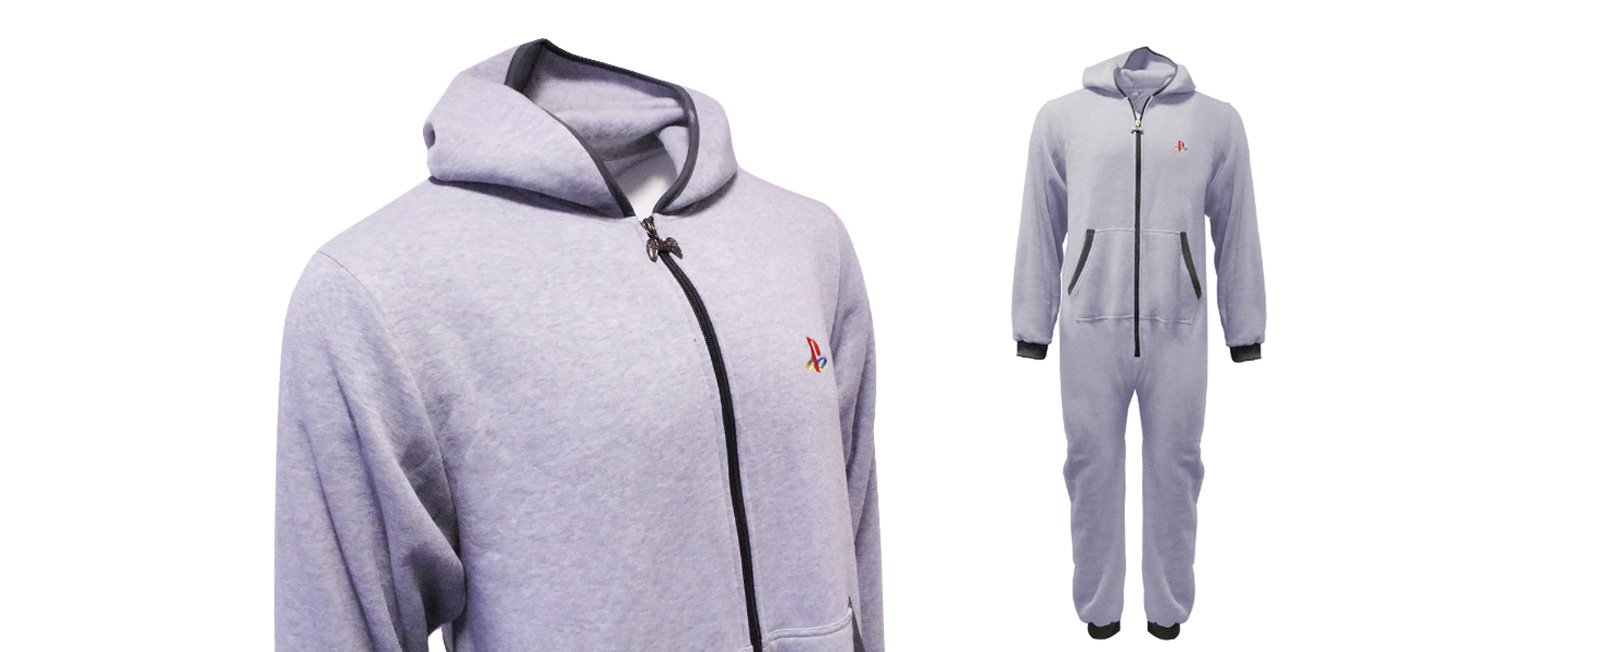 PlayStation onesie